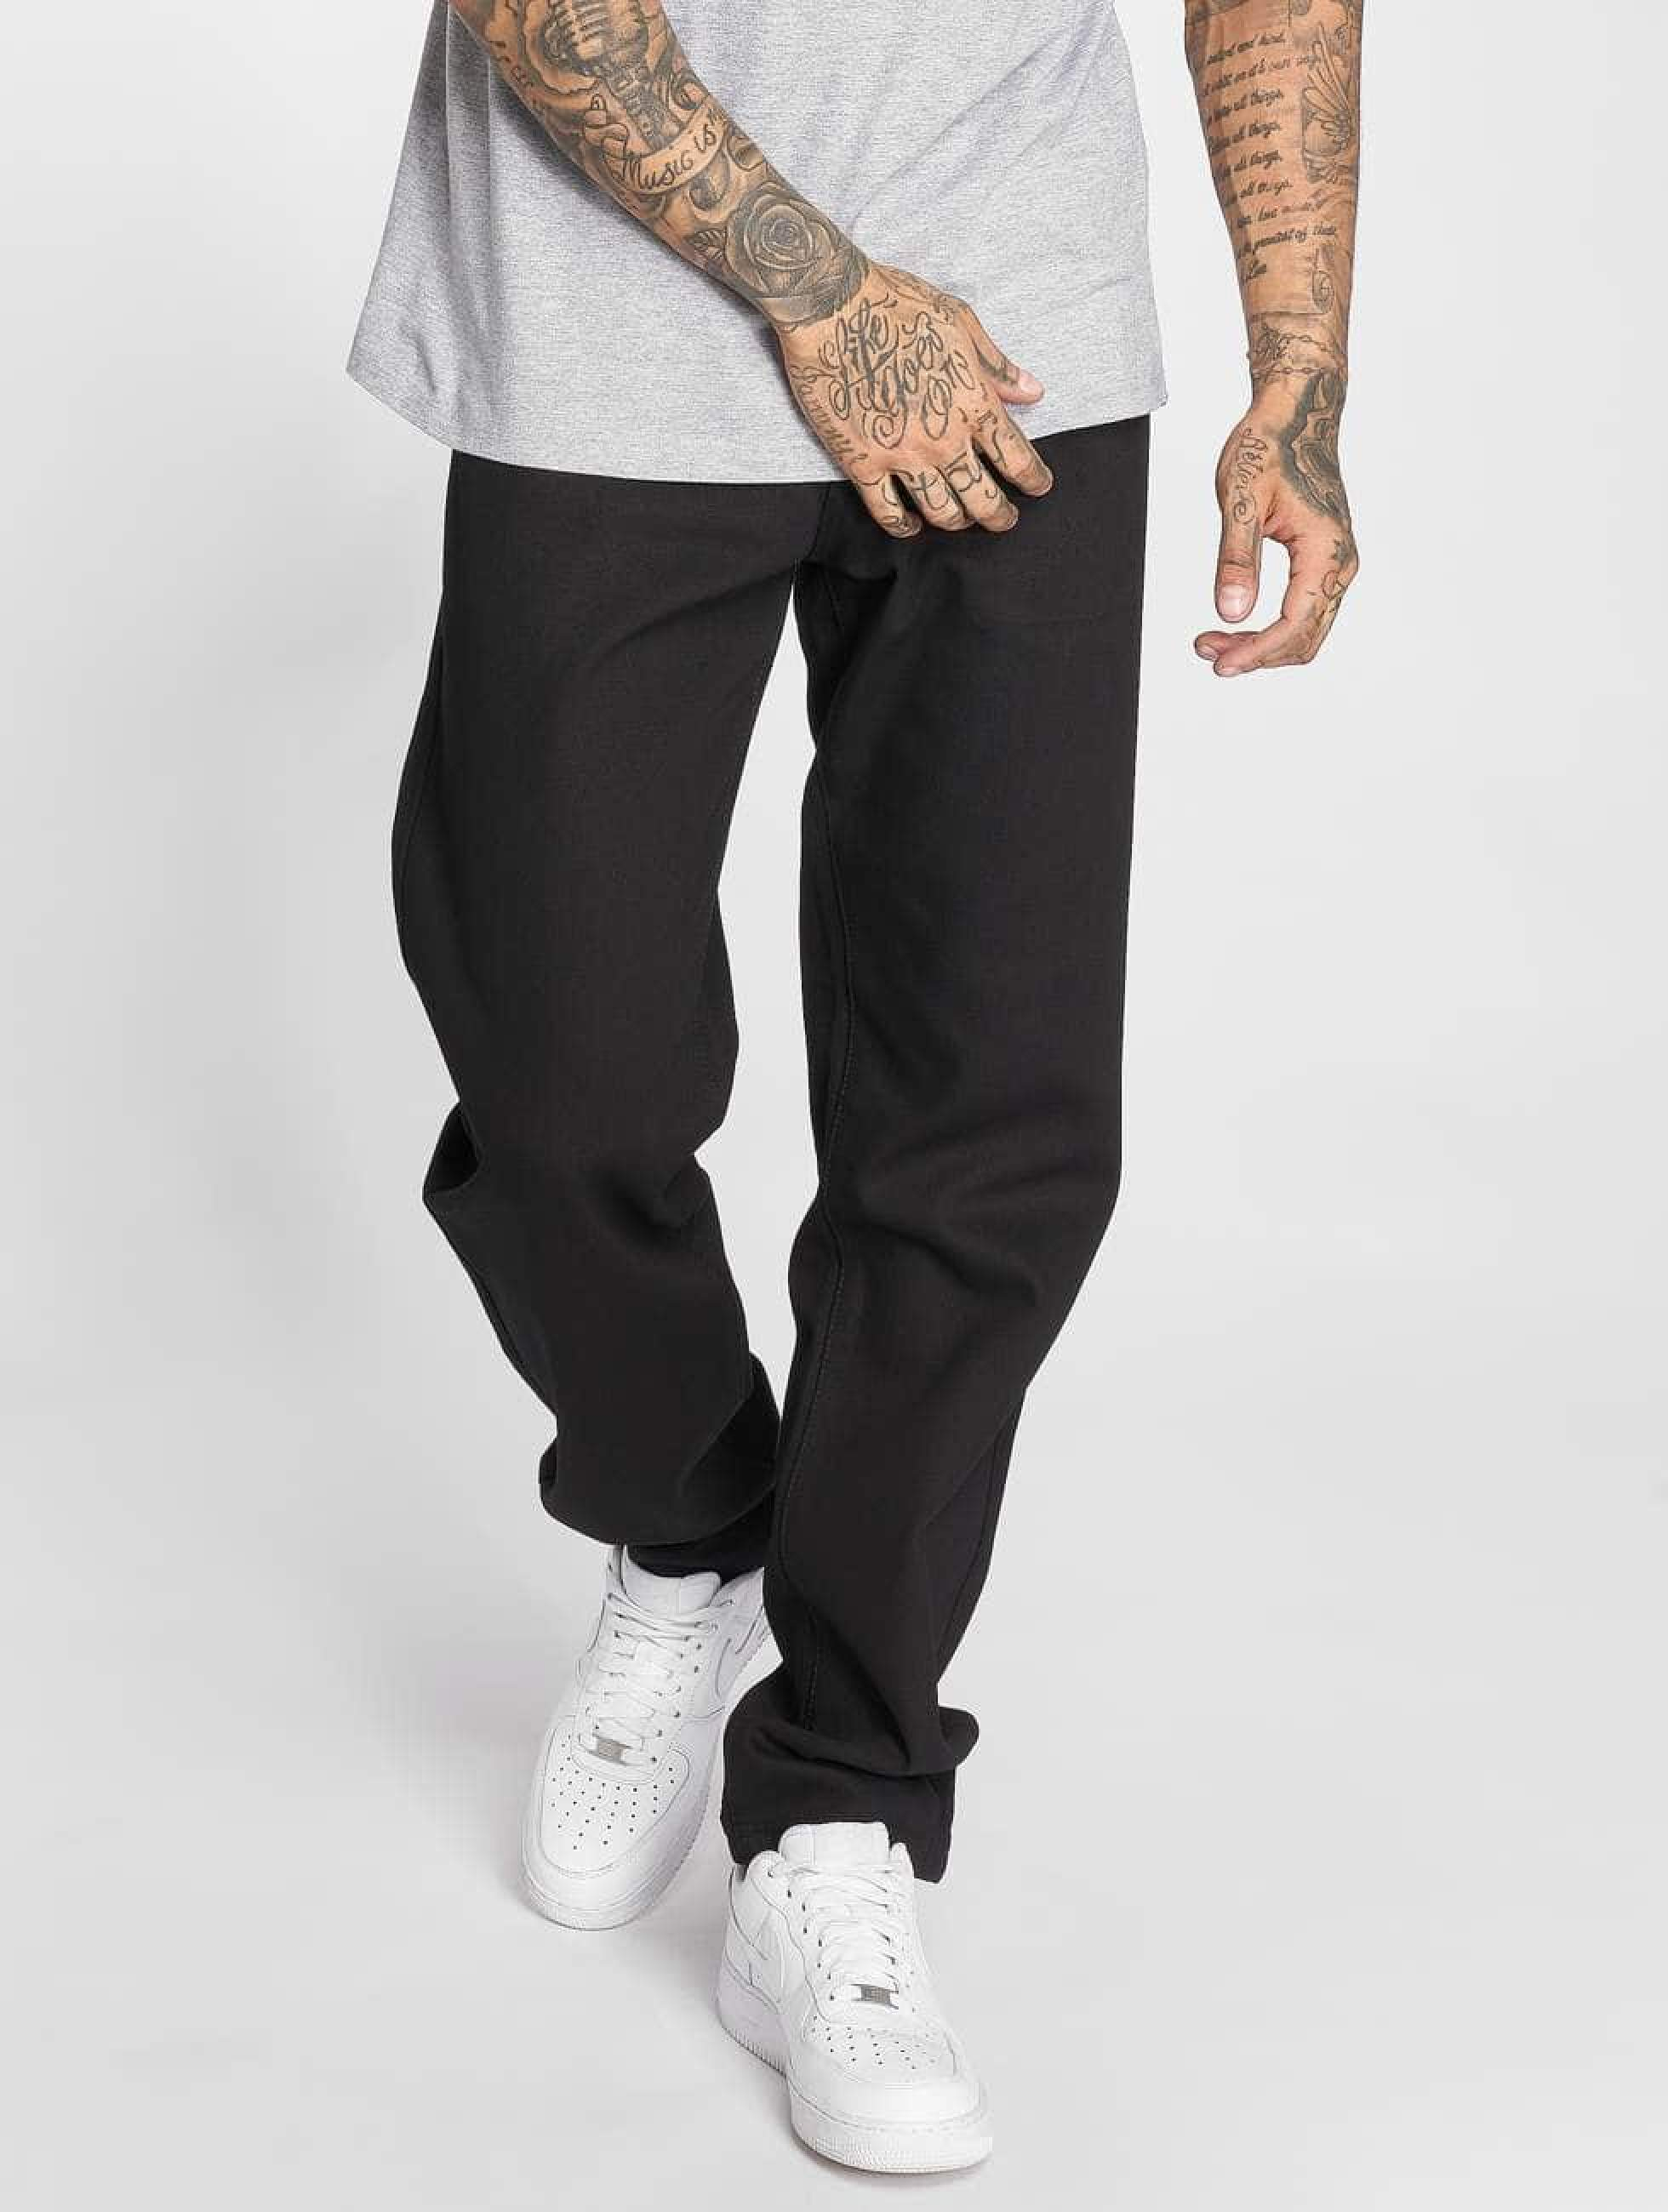 Thug Life / Carrot Fit Jeans B . Denim in black W 30 L 32